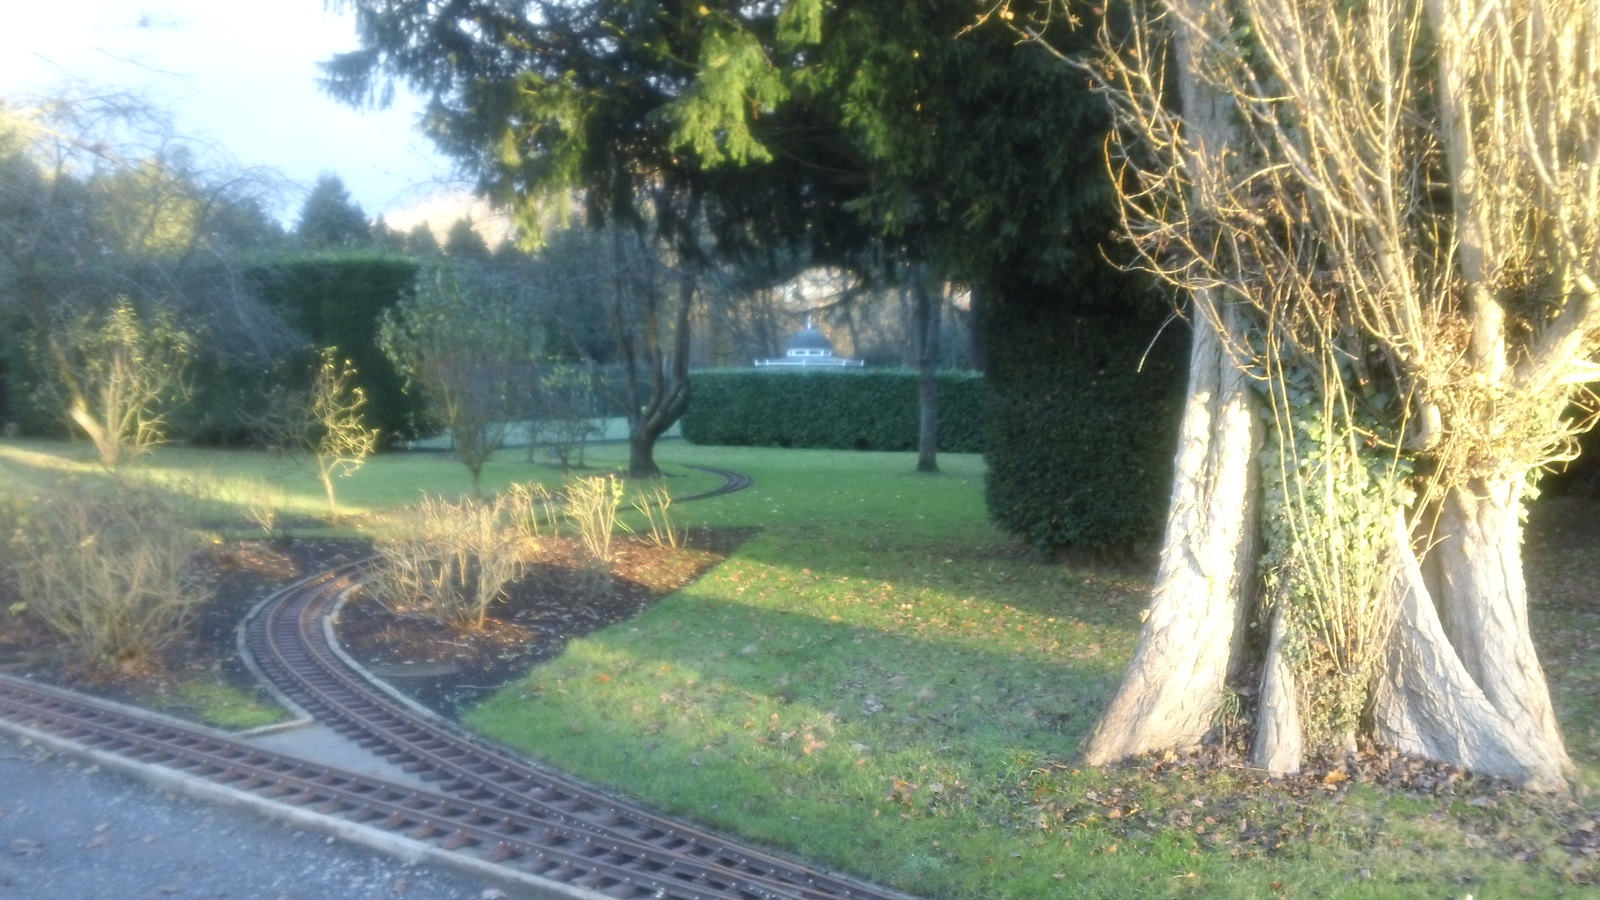 Miniature railway near Bolney Court